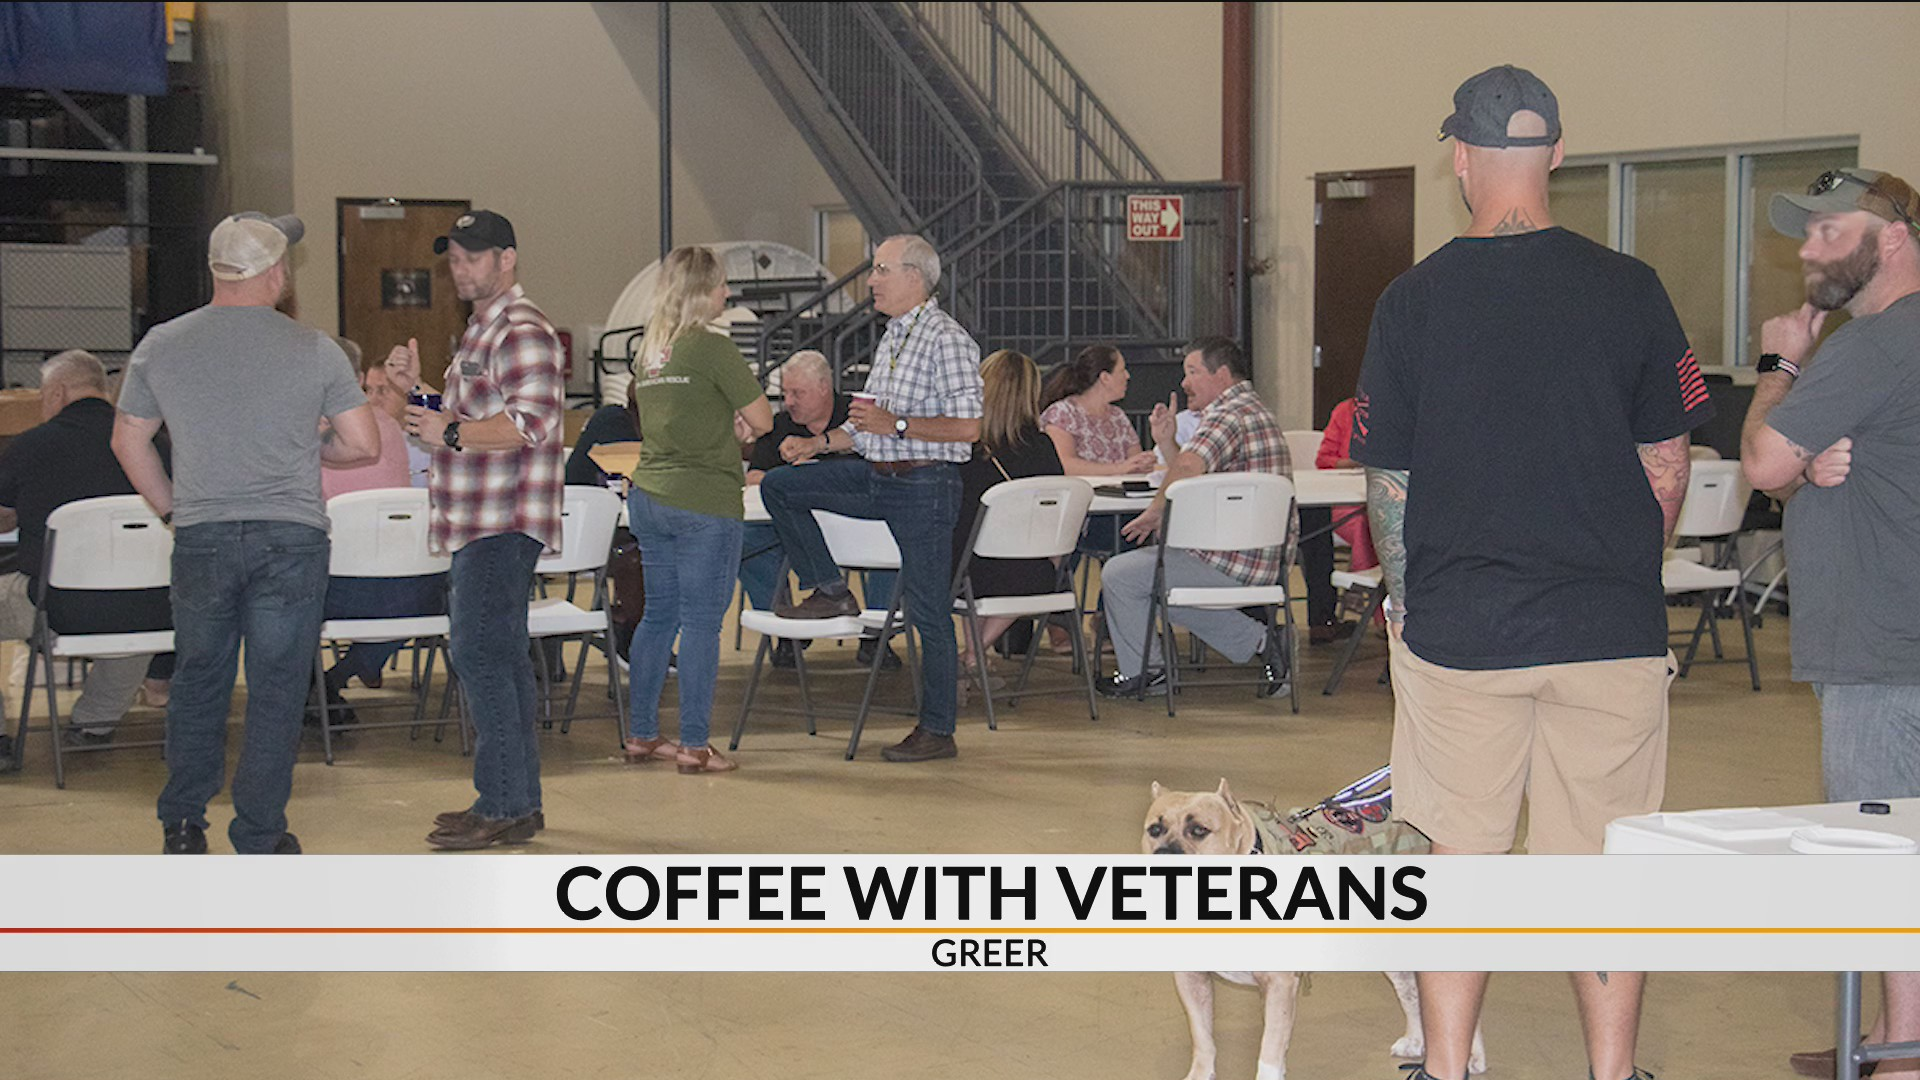 North American Rescue event aims to helps veterans